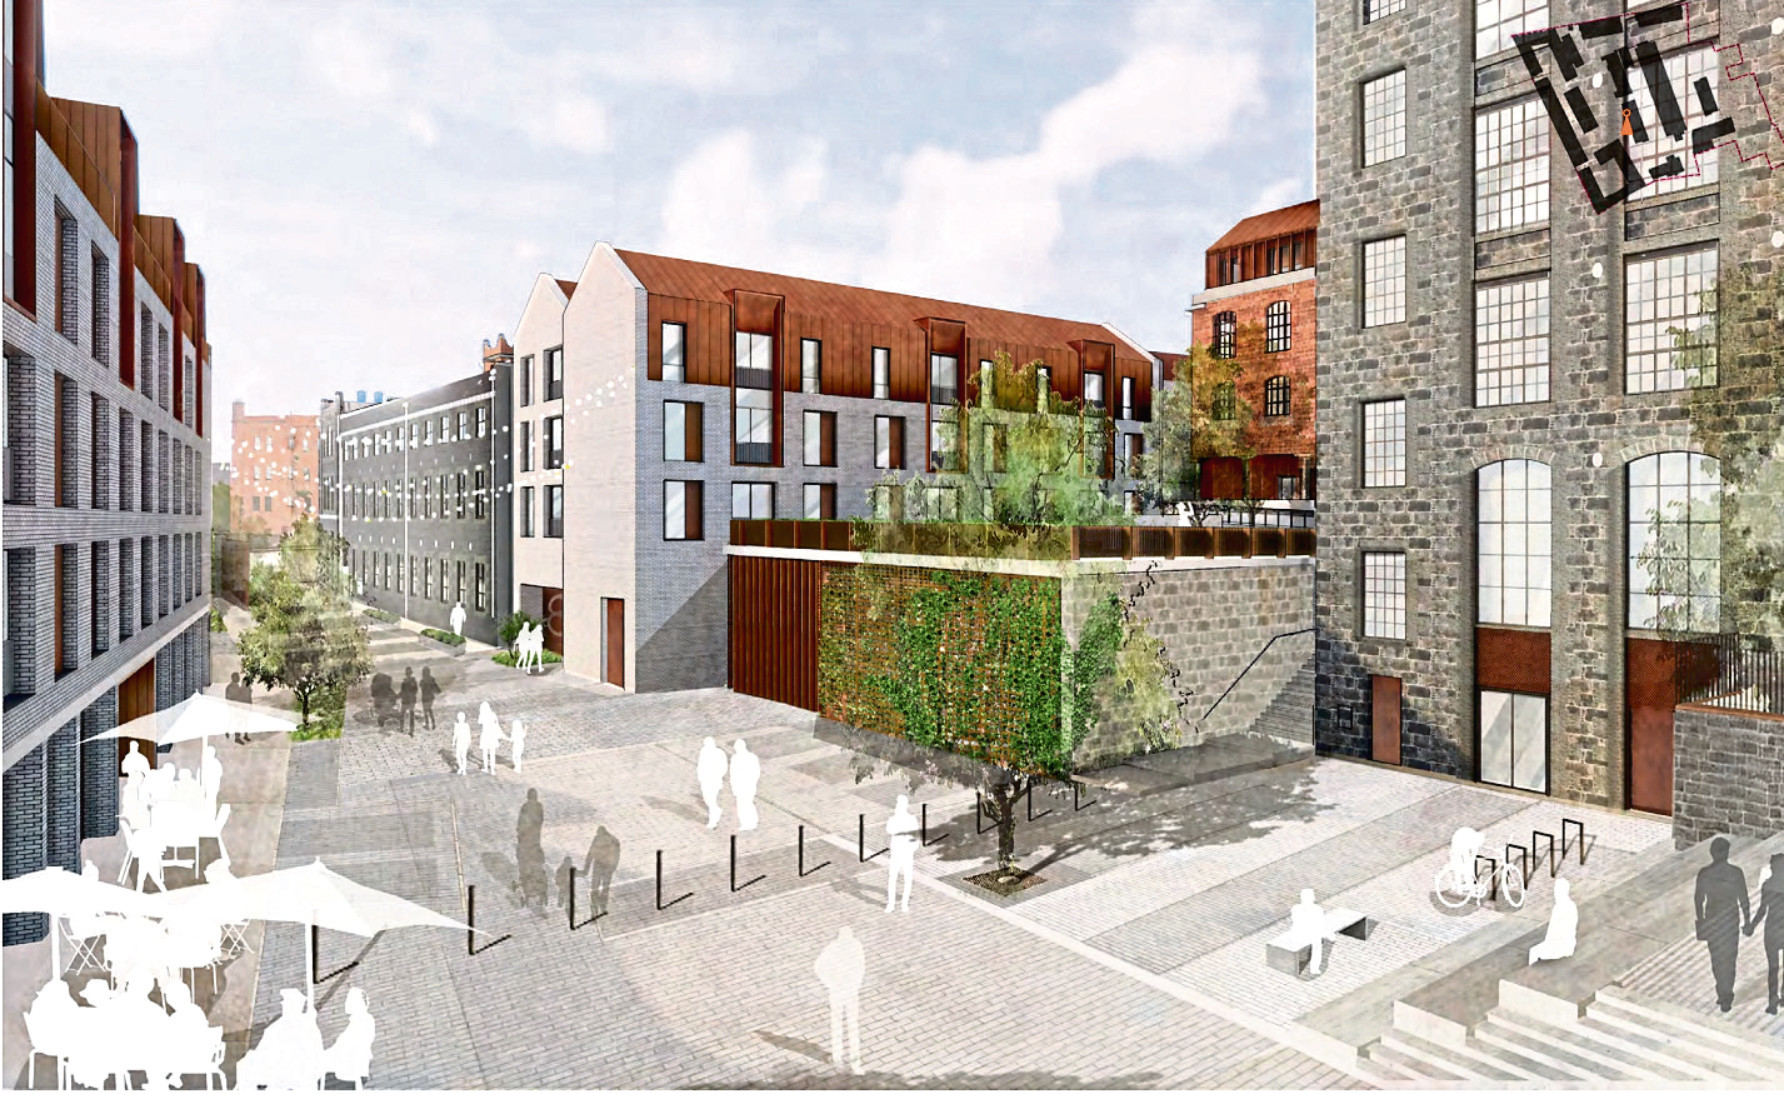 The plans for the £100 million 'urban village' at Broadford Works